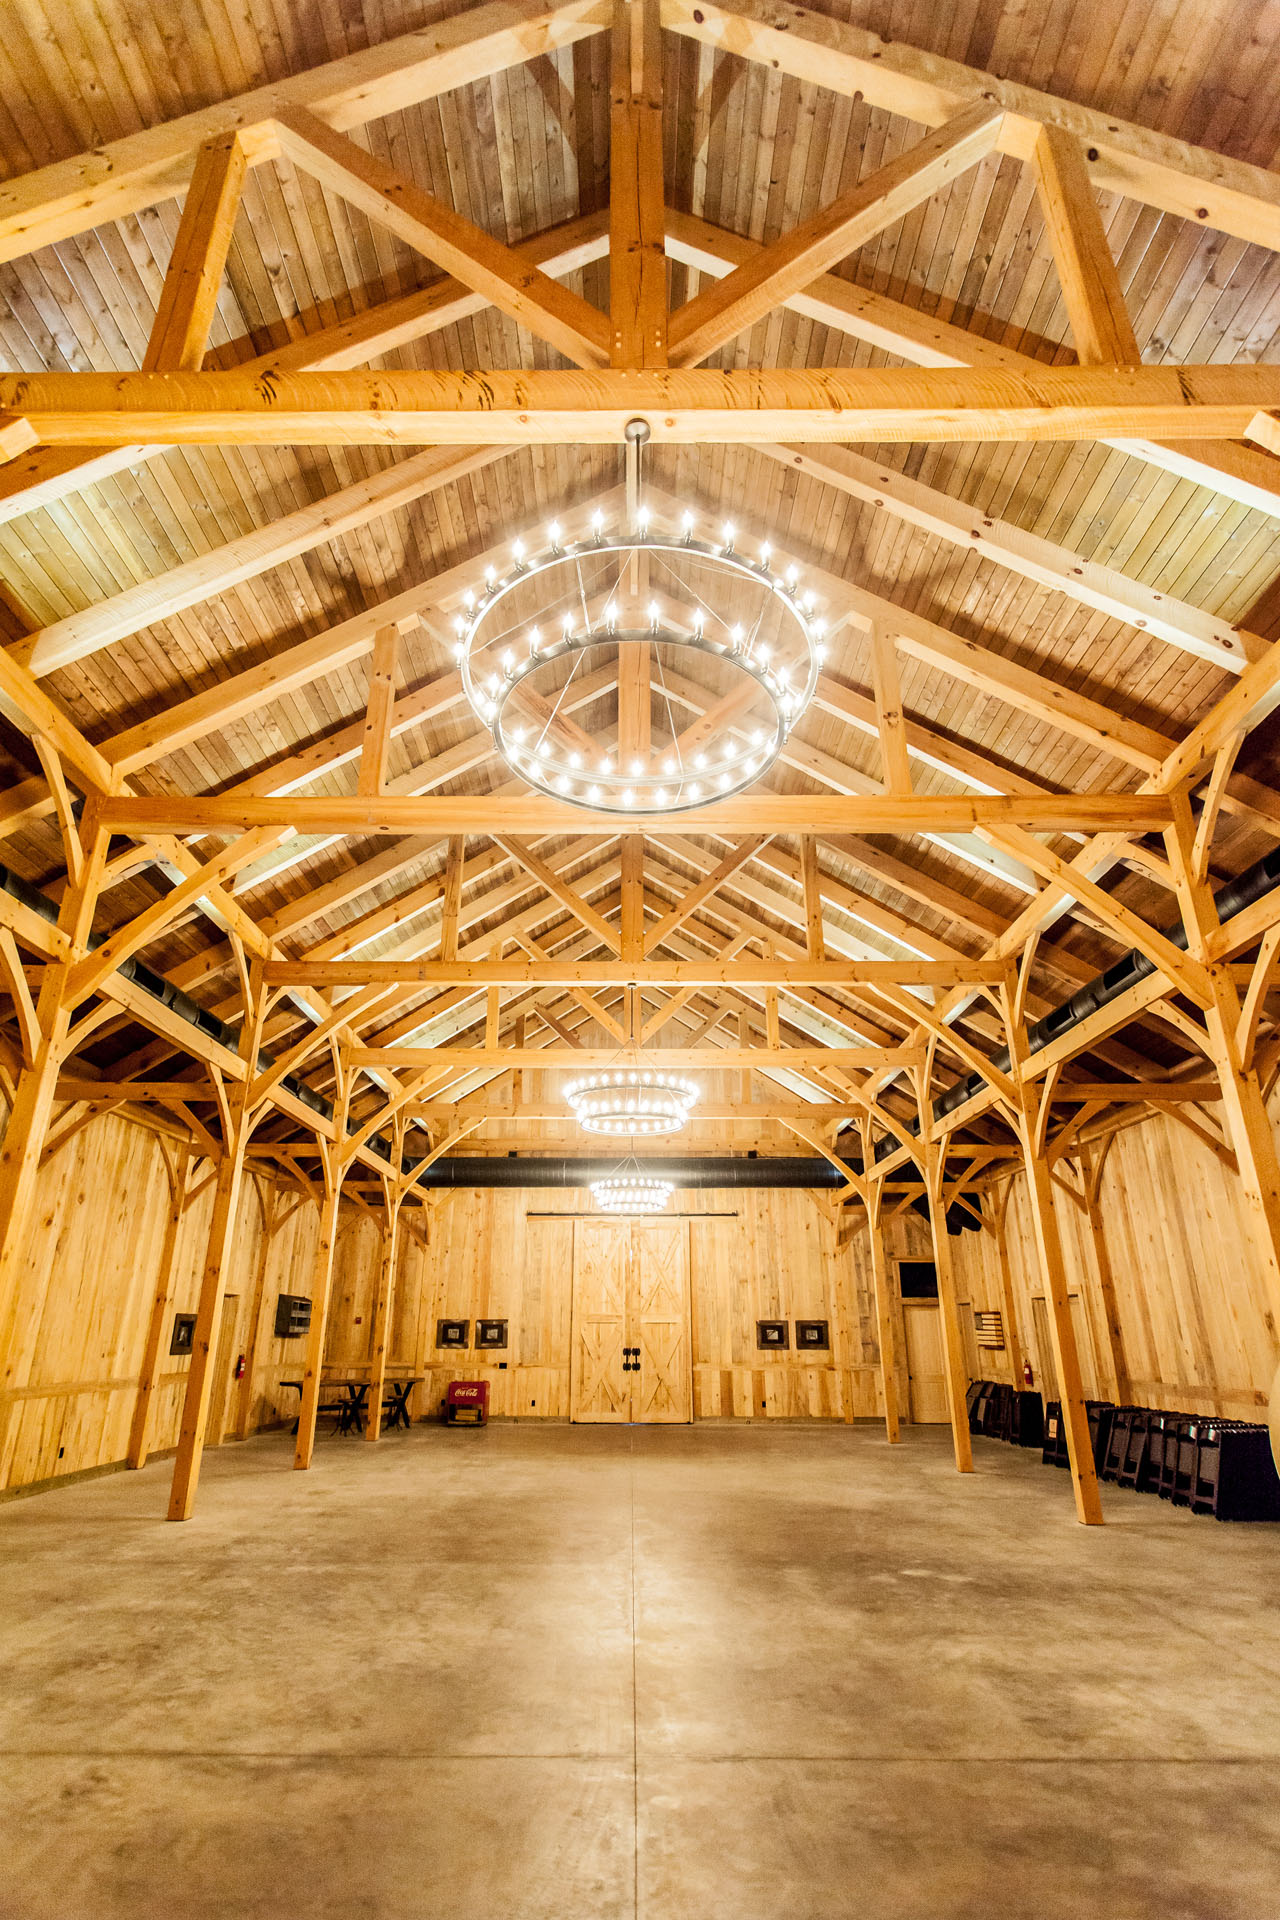 Timber frame horse barn plans designs by hearthstone homes for Timber frame barn home plans